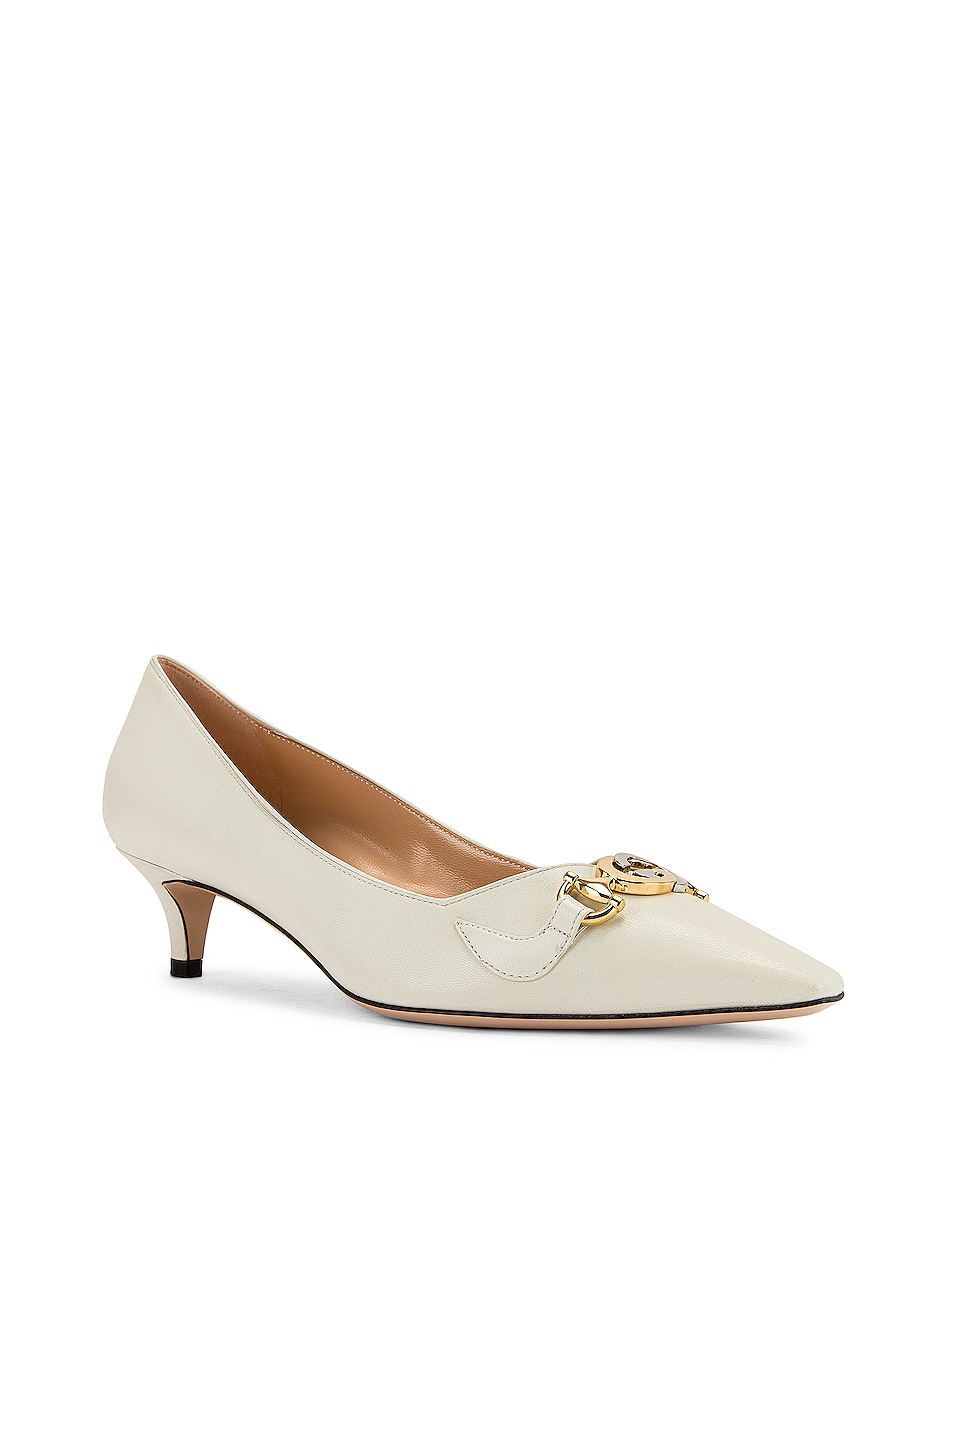 Image 3 of Gucci Low Heel Pumps in Dusty White